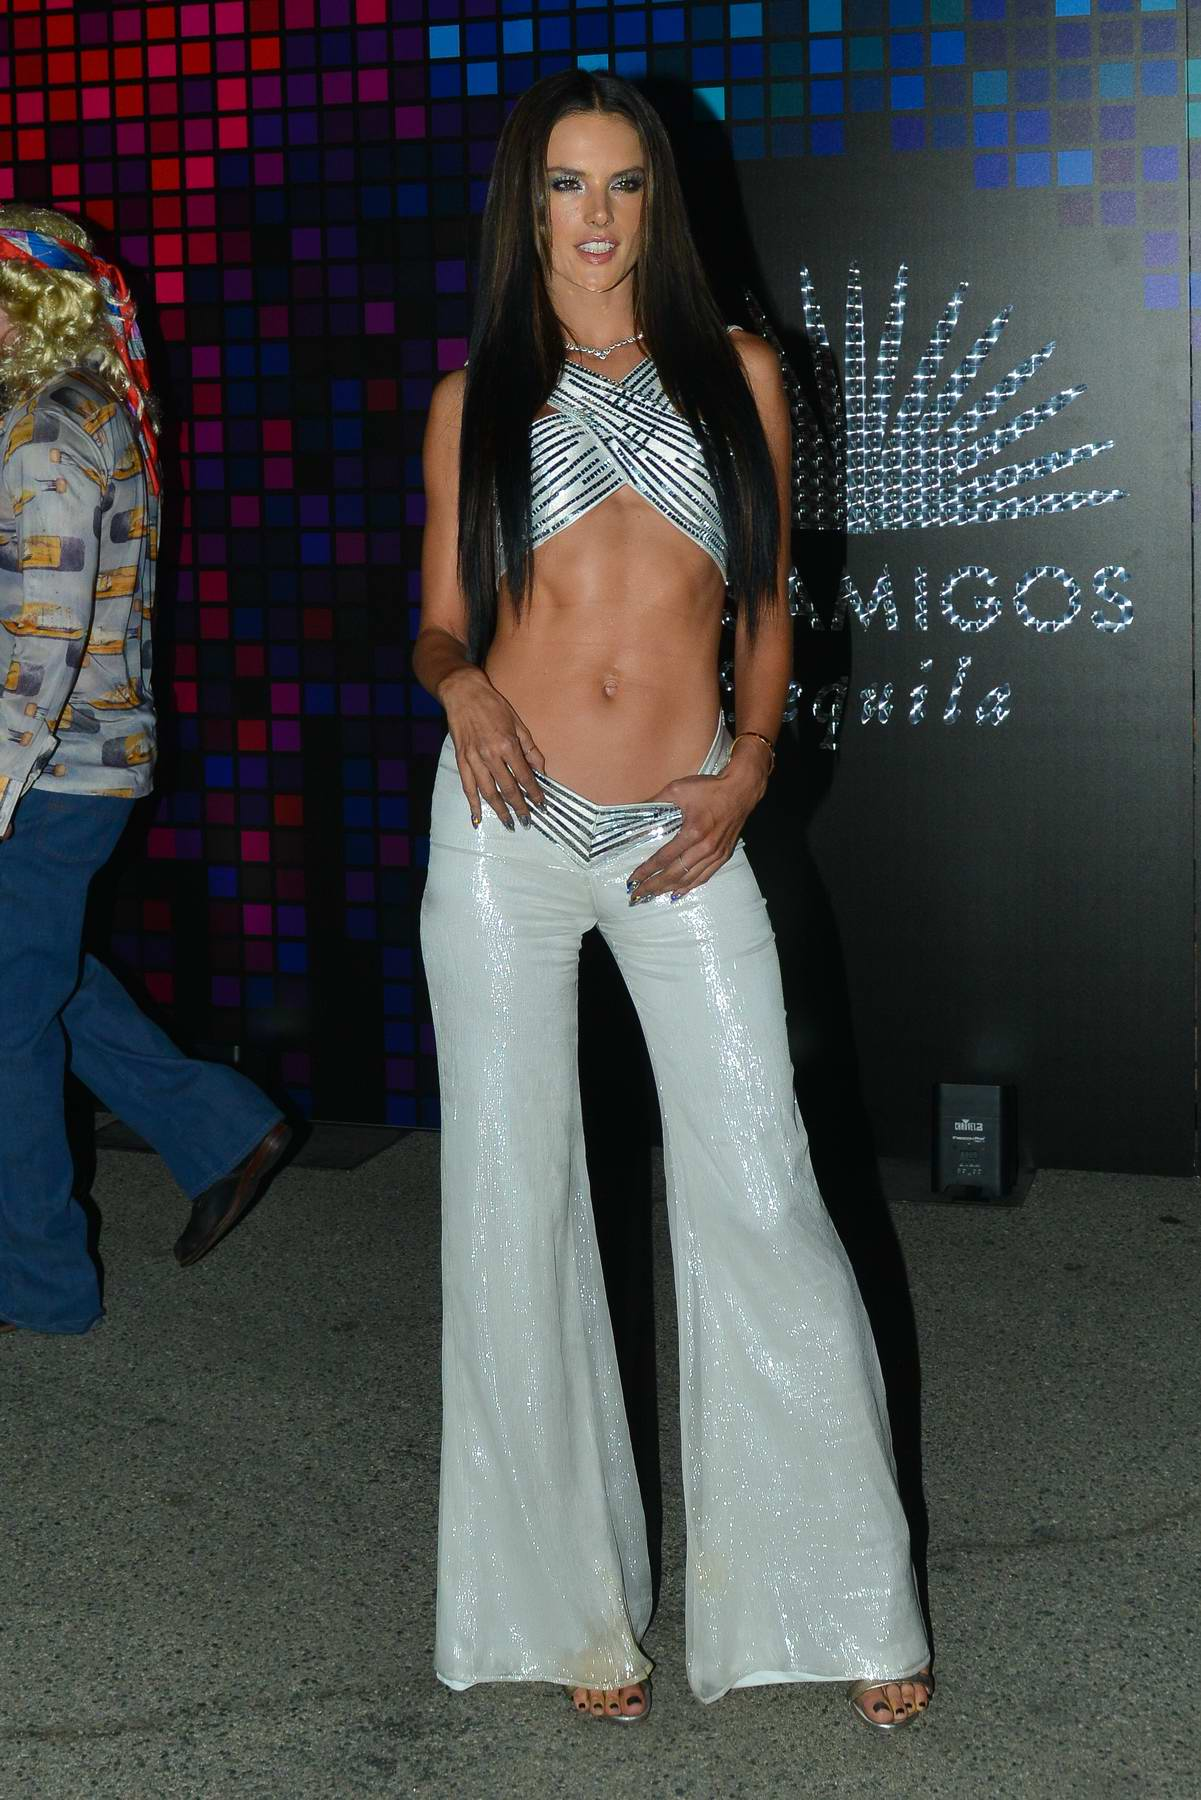 Alessandra Ambrosio at the Tequila Casamigos annual Halloween bash in Los Angeles